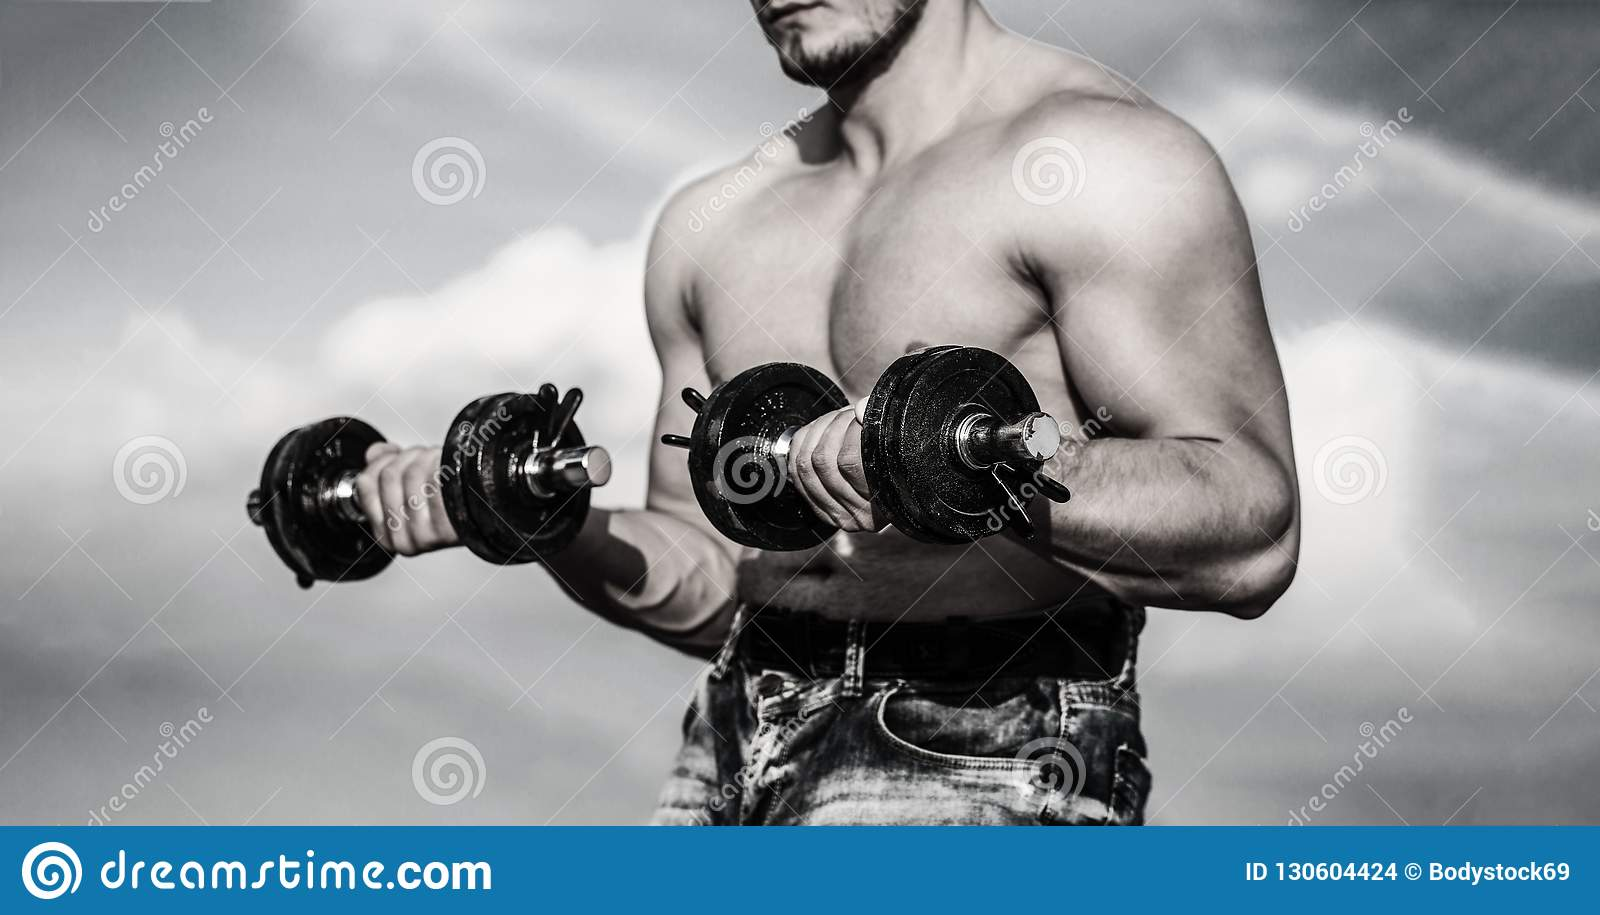 Dumbbell. Strong bodybuilder, perfect deltoid muscles, shoulders, biceps, triceps and chest. Muscles with dumbbell. Man